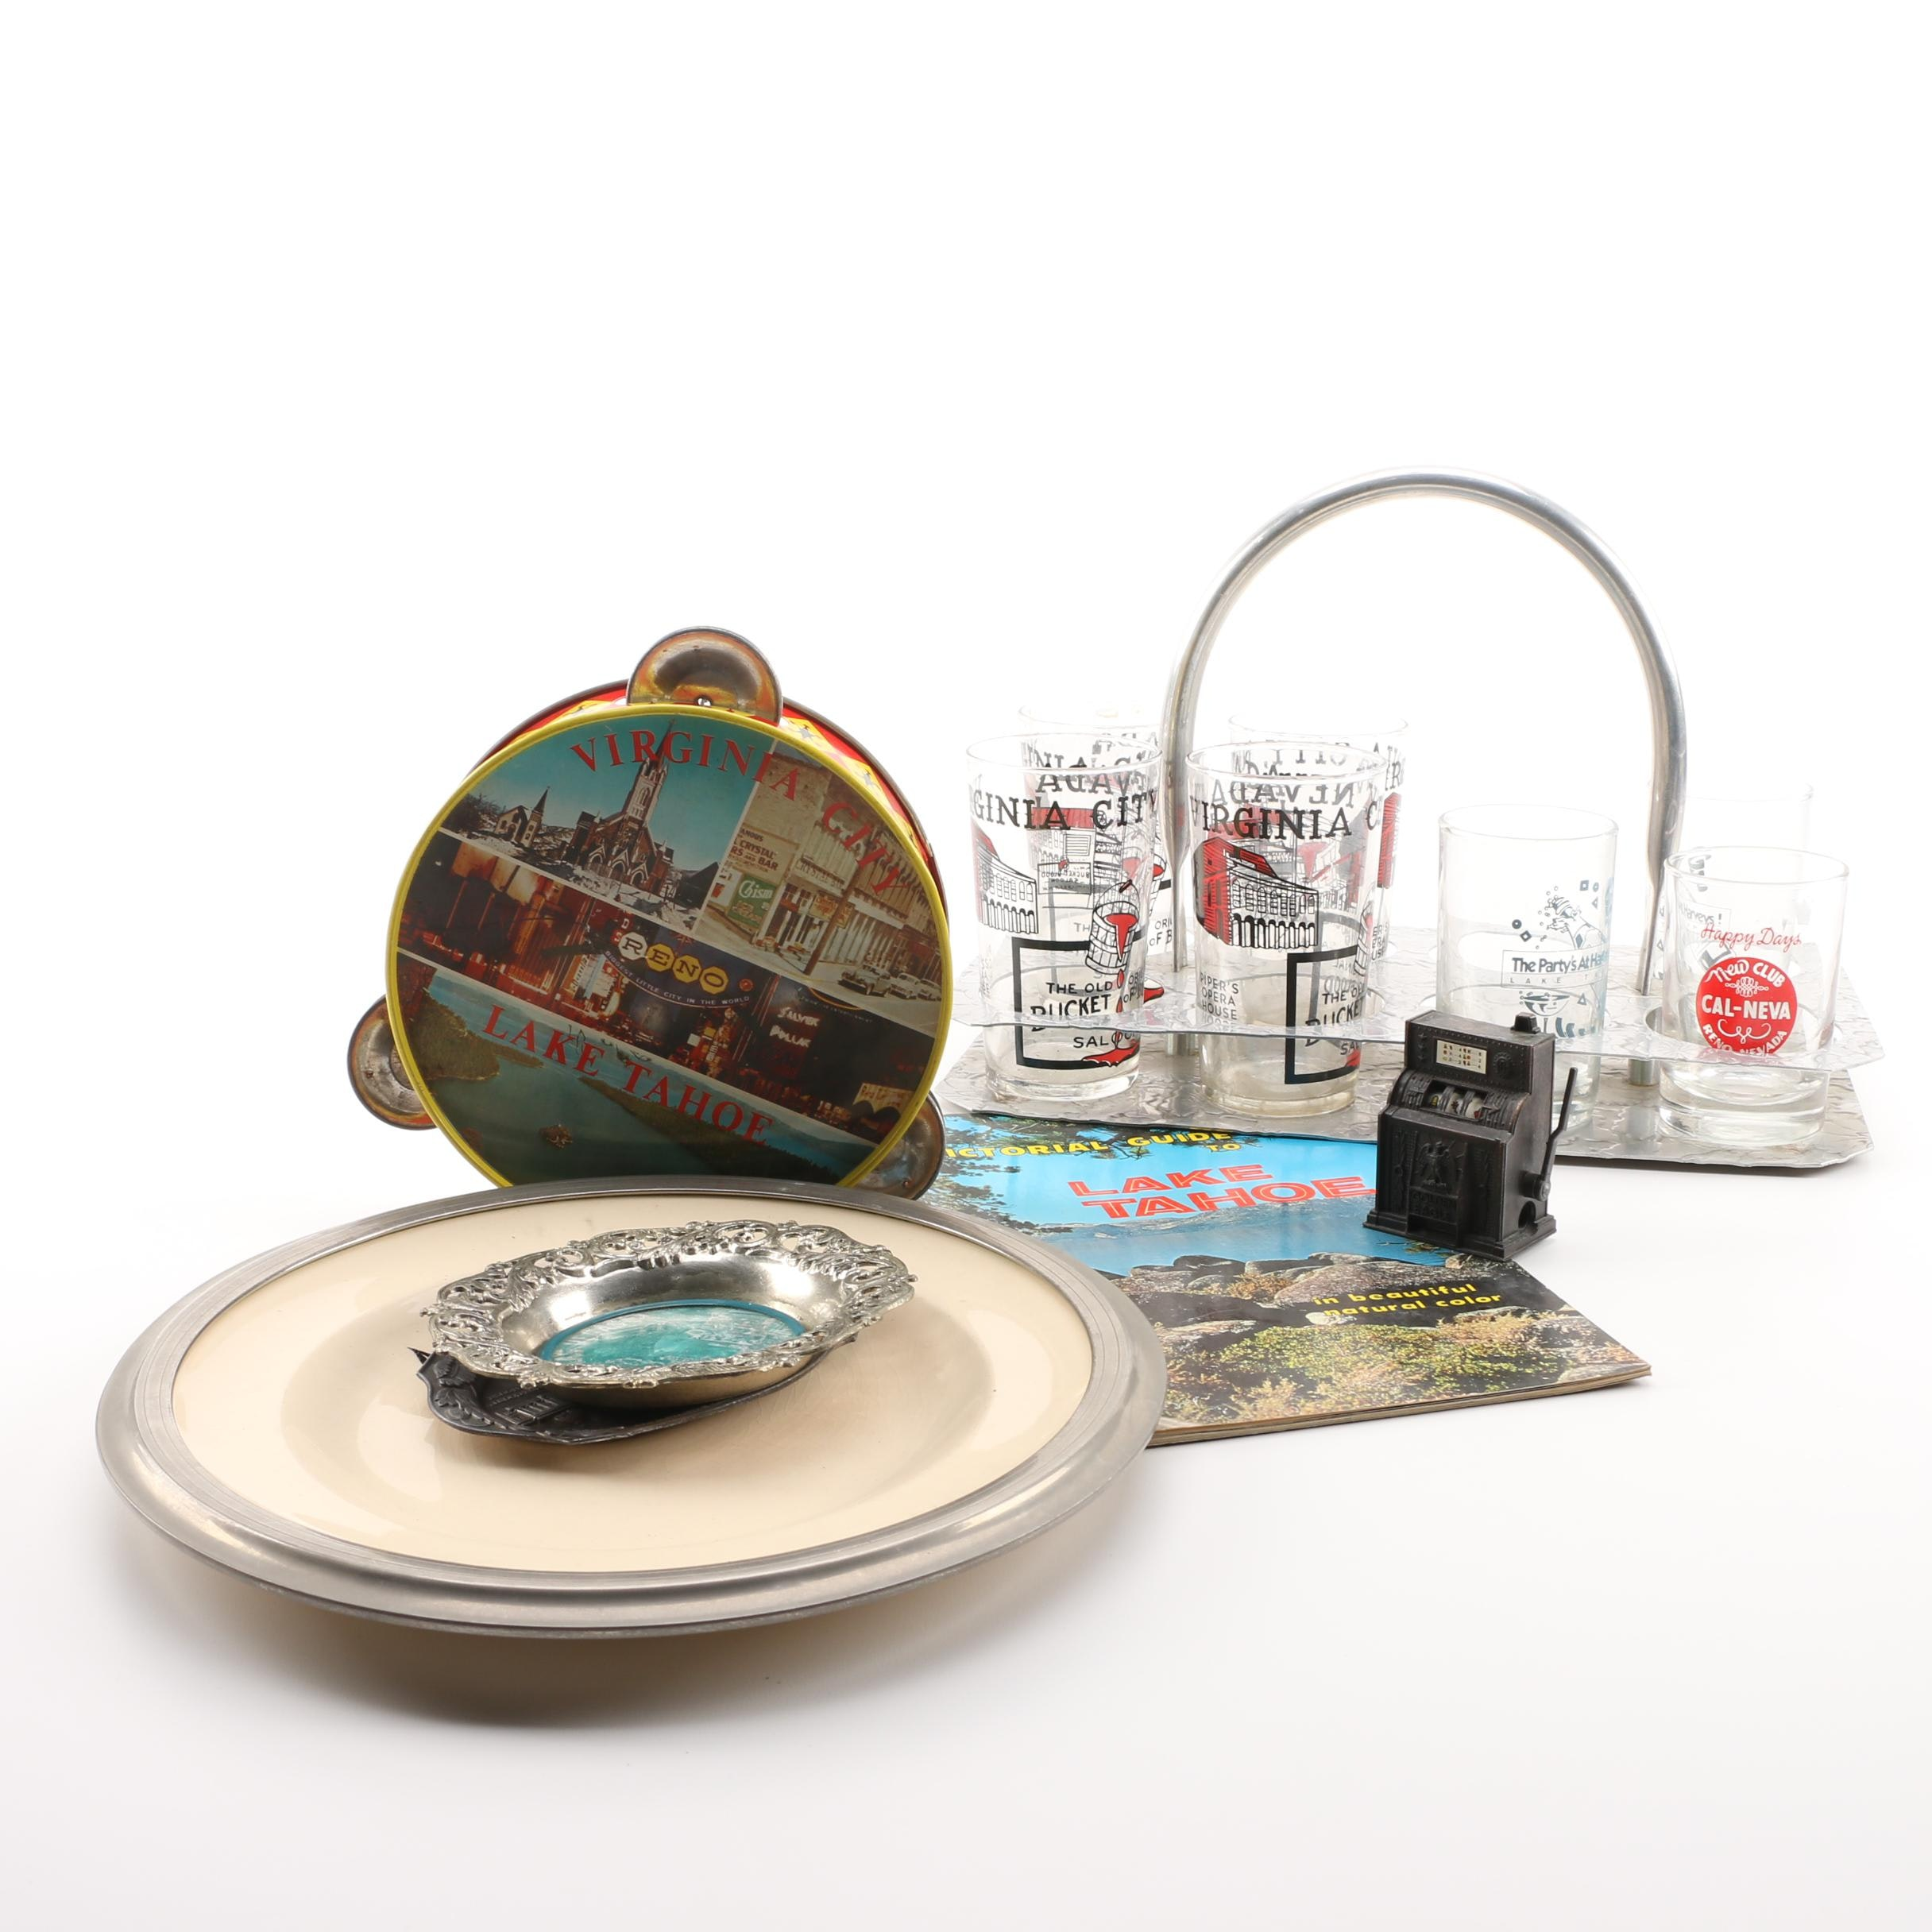 Vintage Travel Souvenirs and Other Collectibles, Including Lake Tahoe and Others